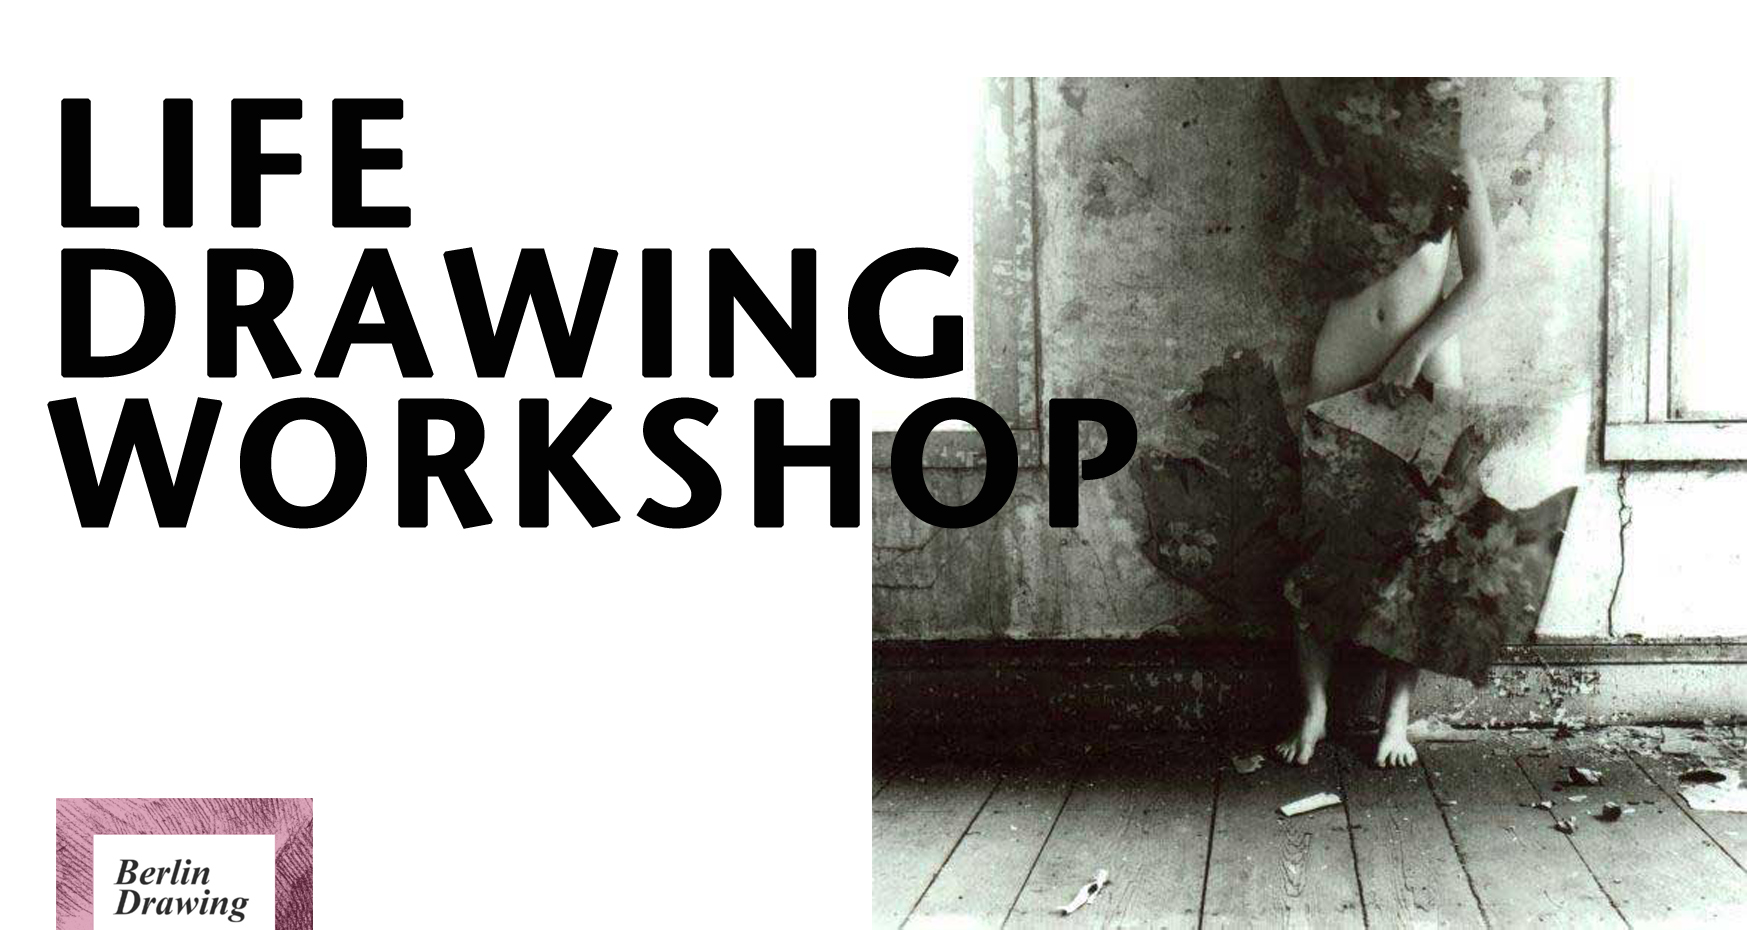 Life drawing workshop | ARTCONNECT